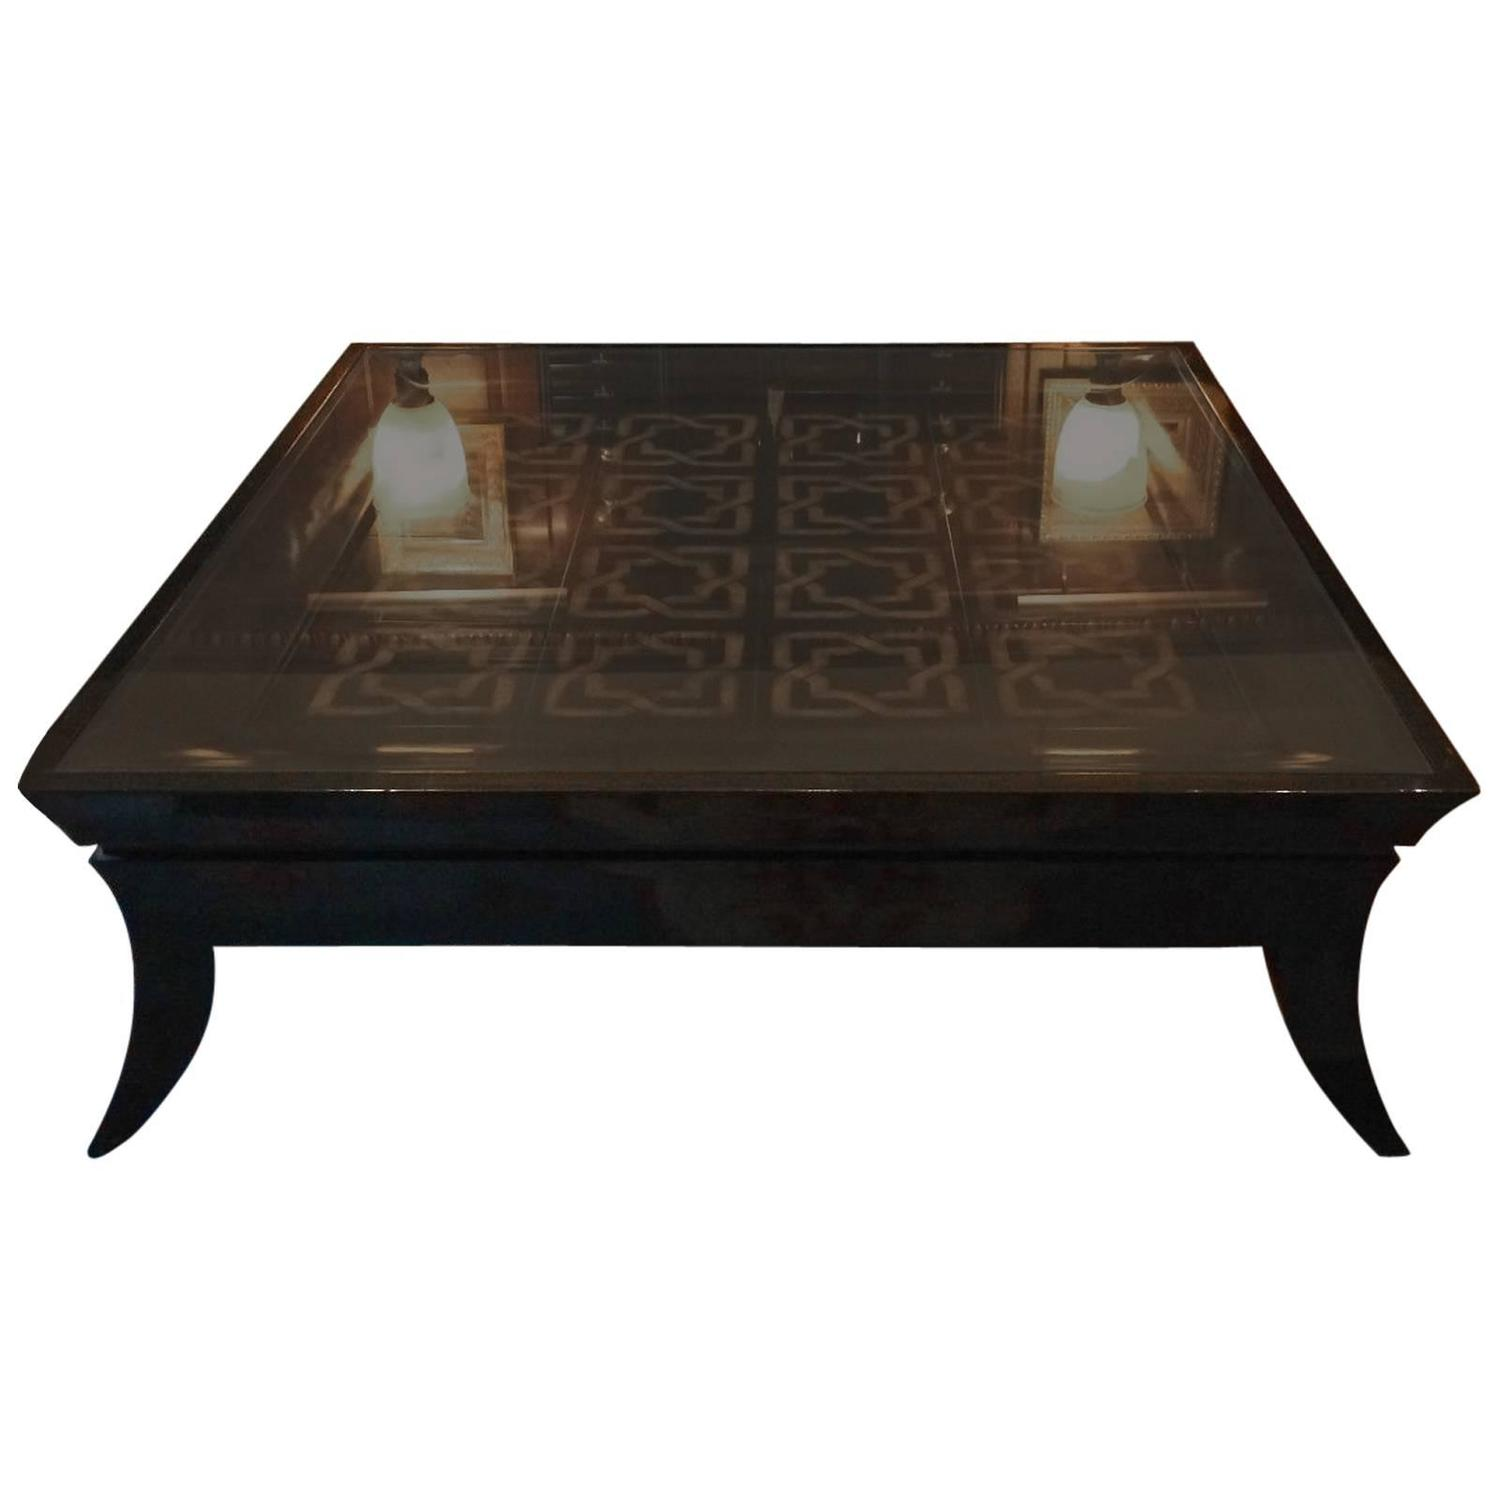 Large coffee table glass topped tiled modern at 1stdibs Coffee tables glass top